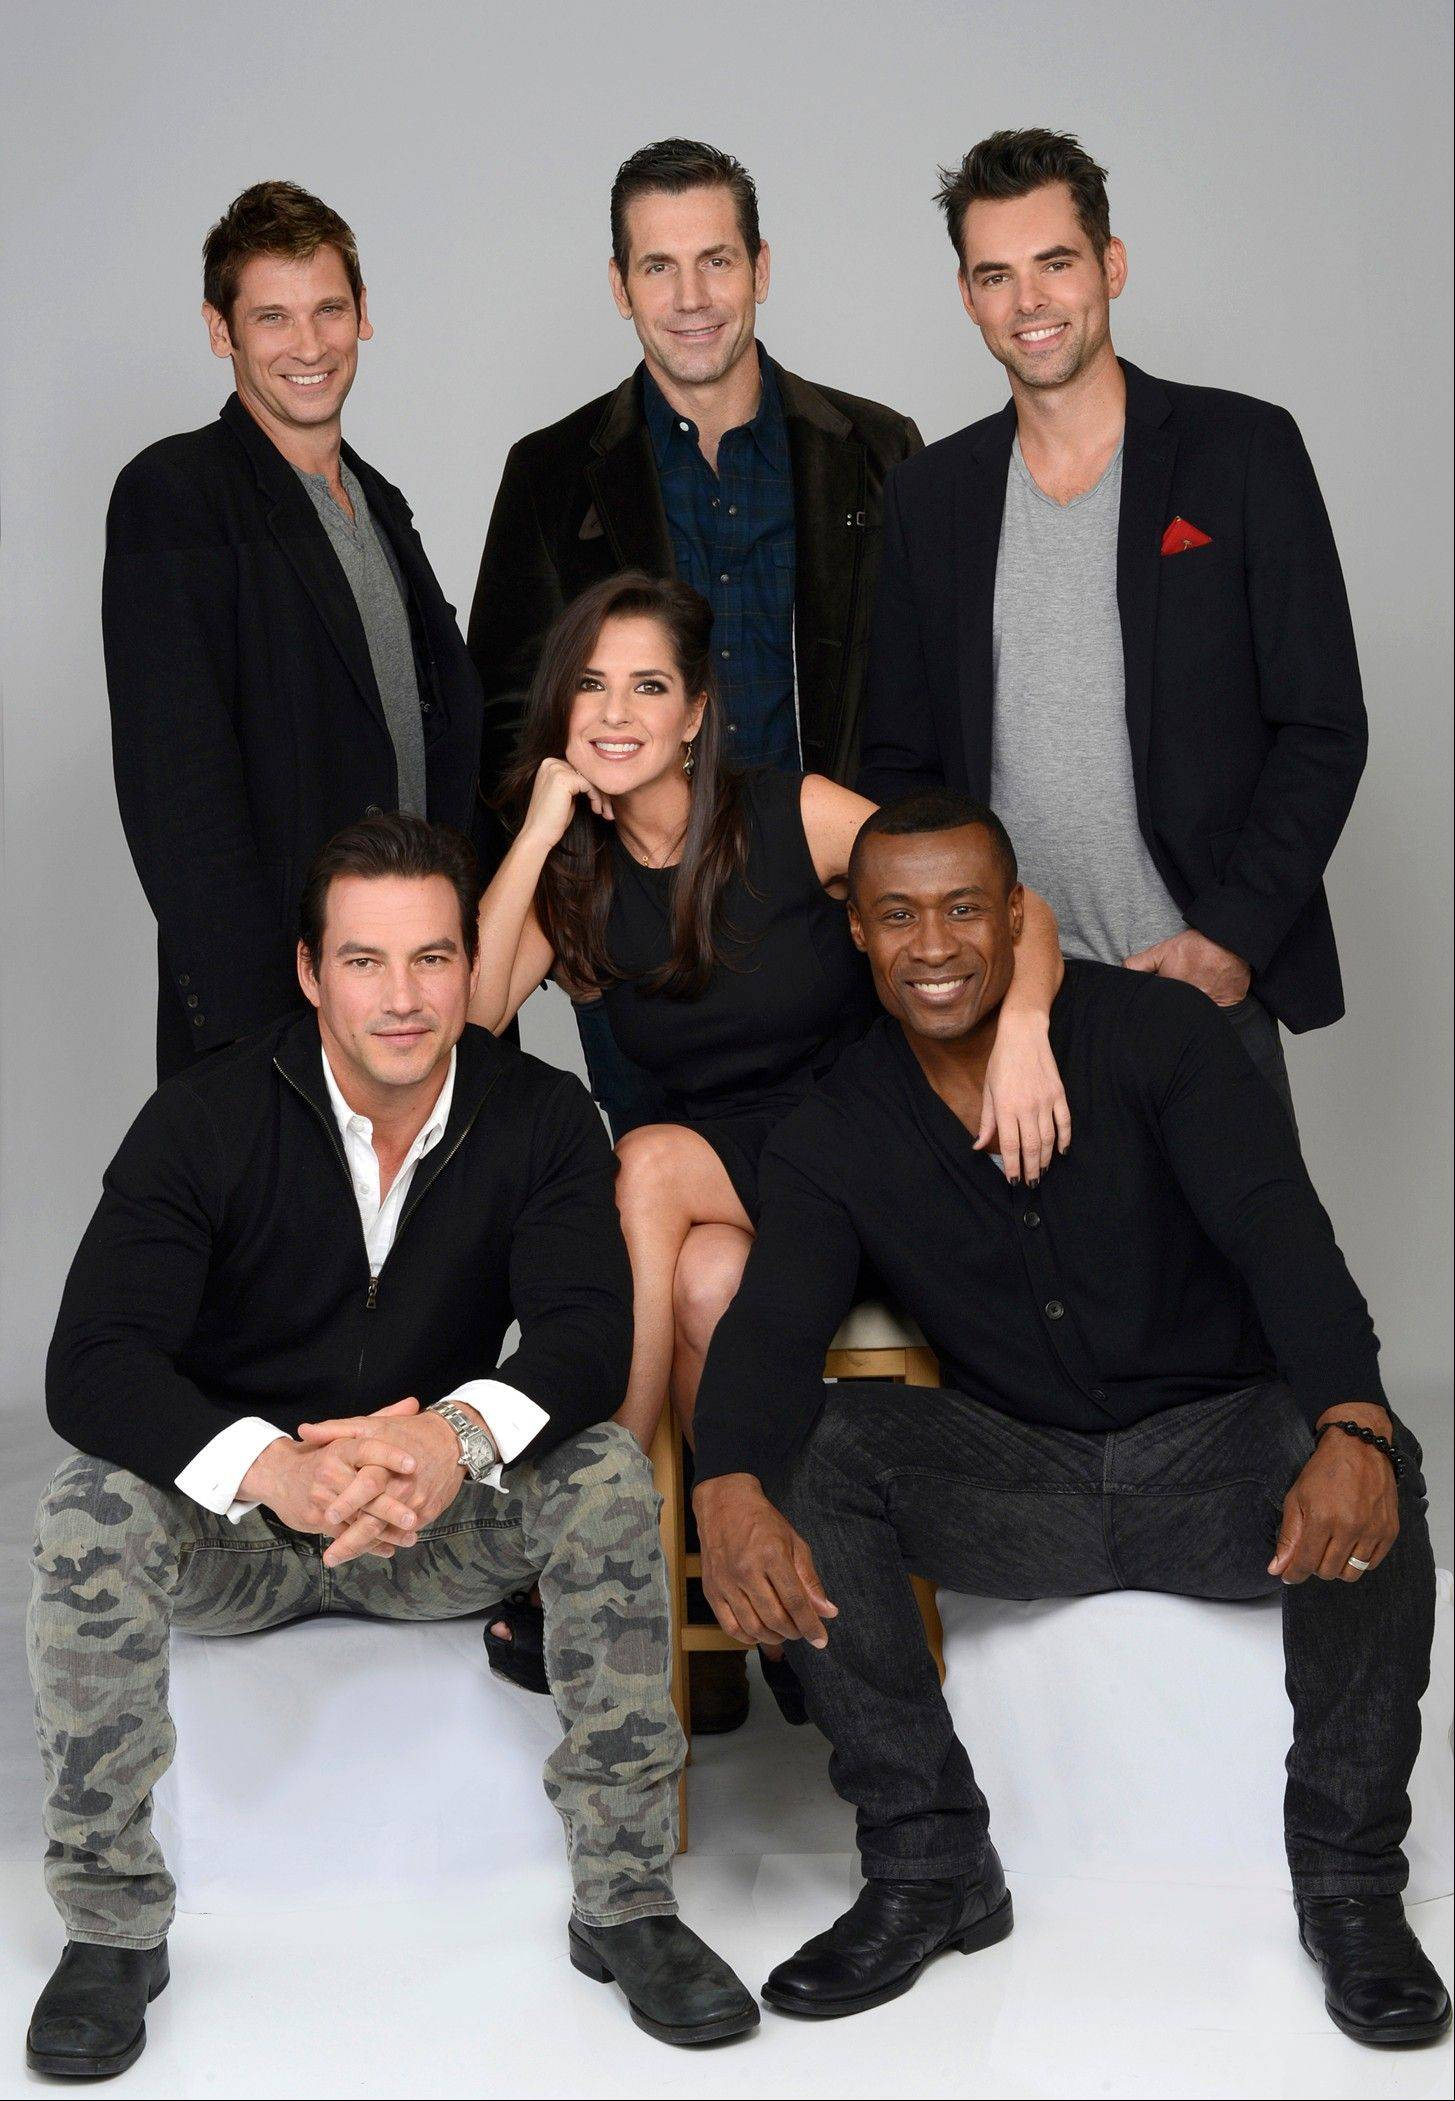 """General Hospital"" actors Kelly Monaco, center, with, clockwise from front row left, Tyler Christopher, Roger Howarth, Executive Producer Frank Valenti, Jason Thompson and Sean Blakemore in New York. The popular daytime drama celebrates it's 50th anniversary this year."